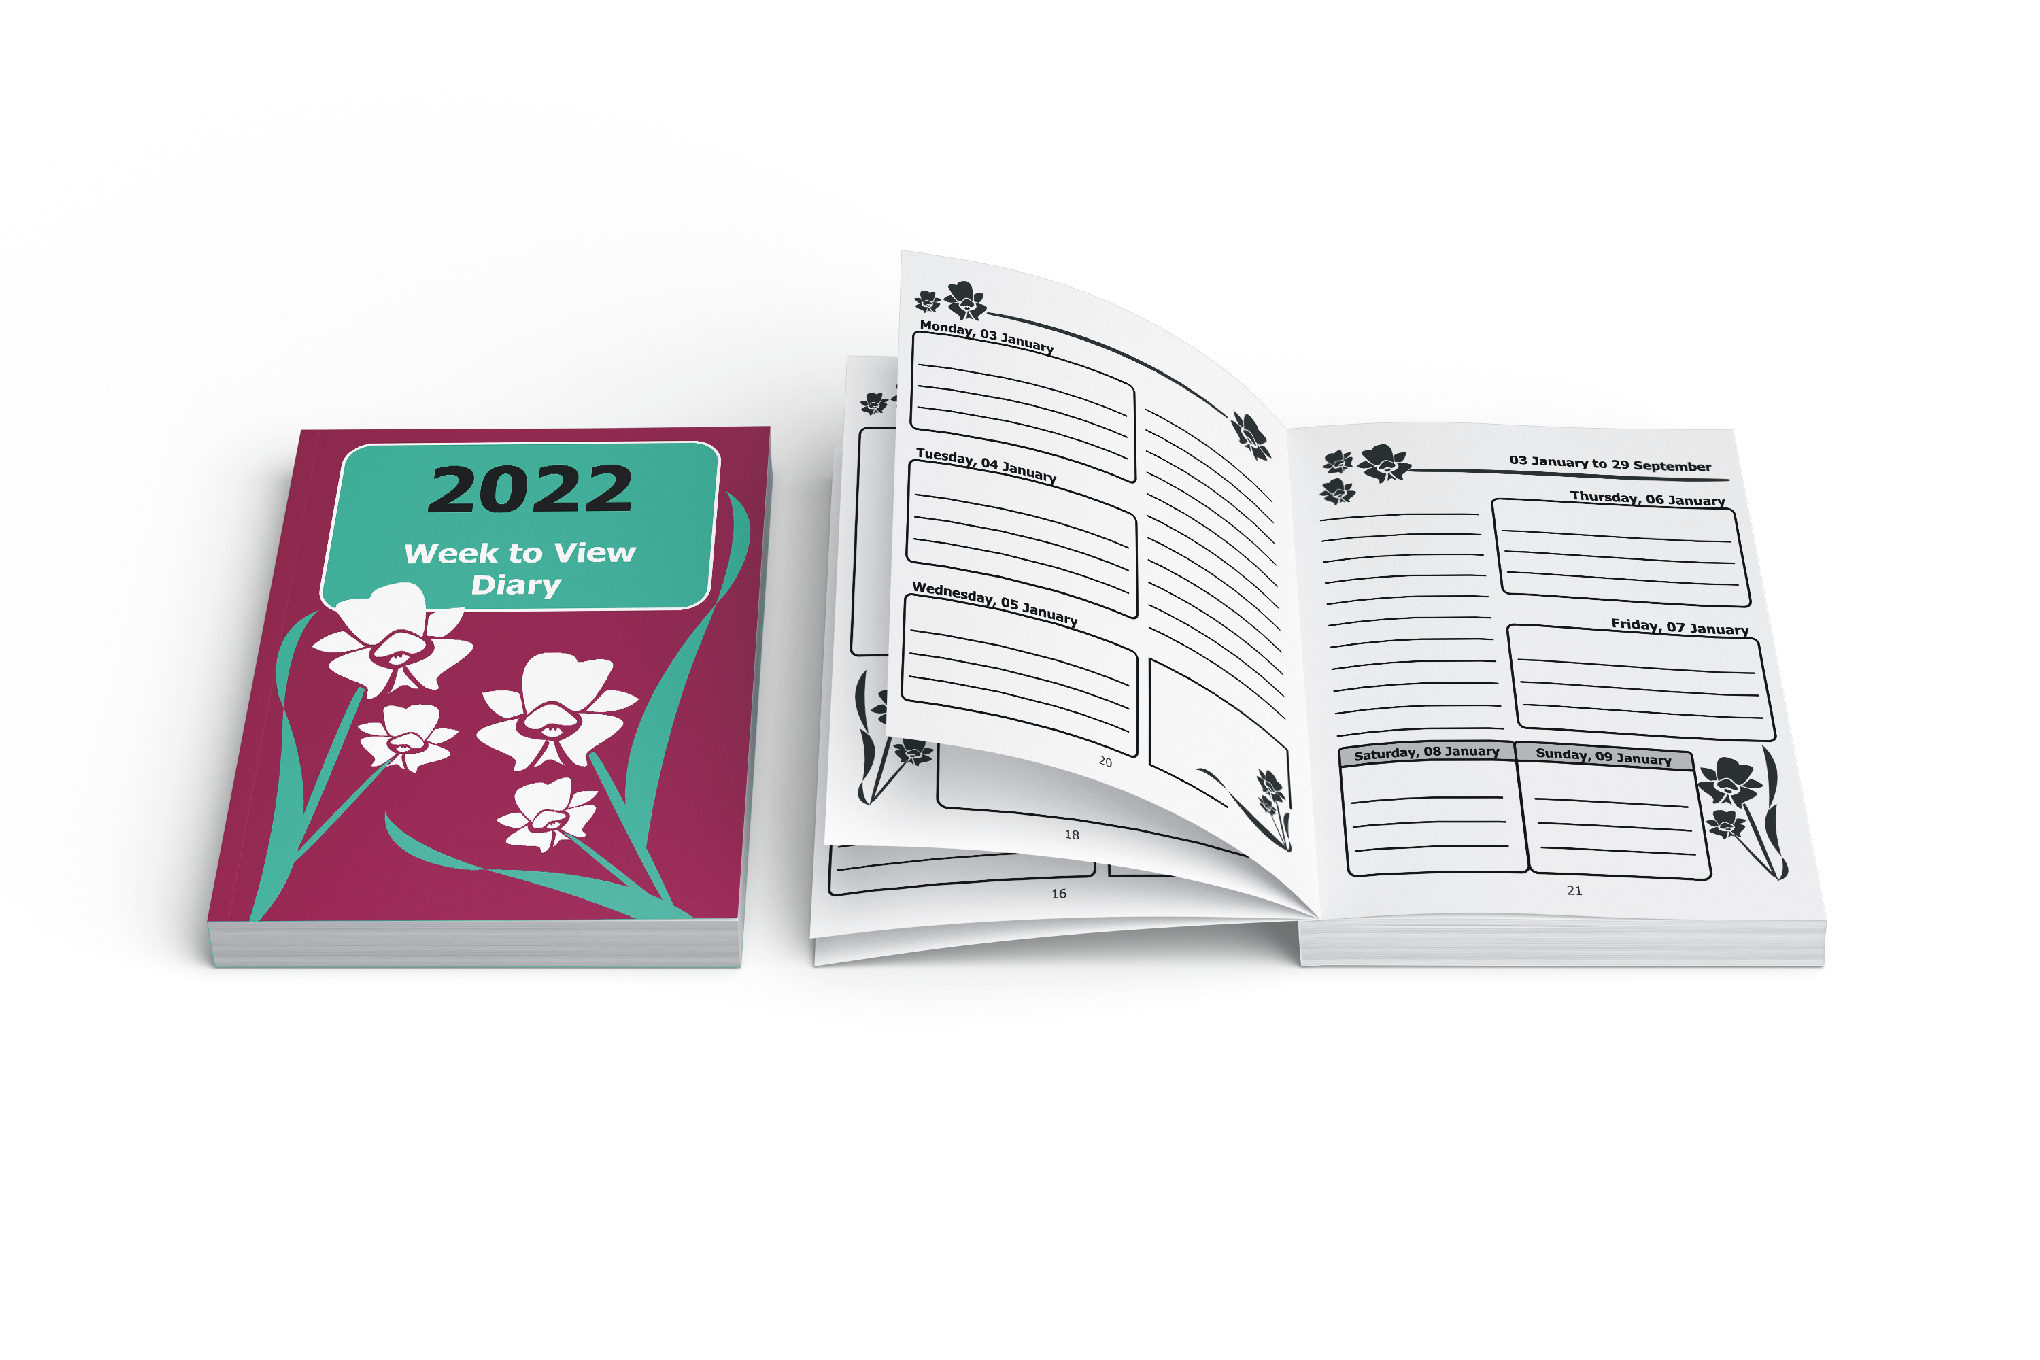 Image of 2022 Large Print Publications 2021 large print diary with orchid cover